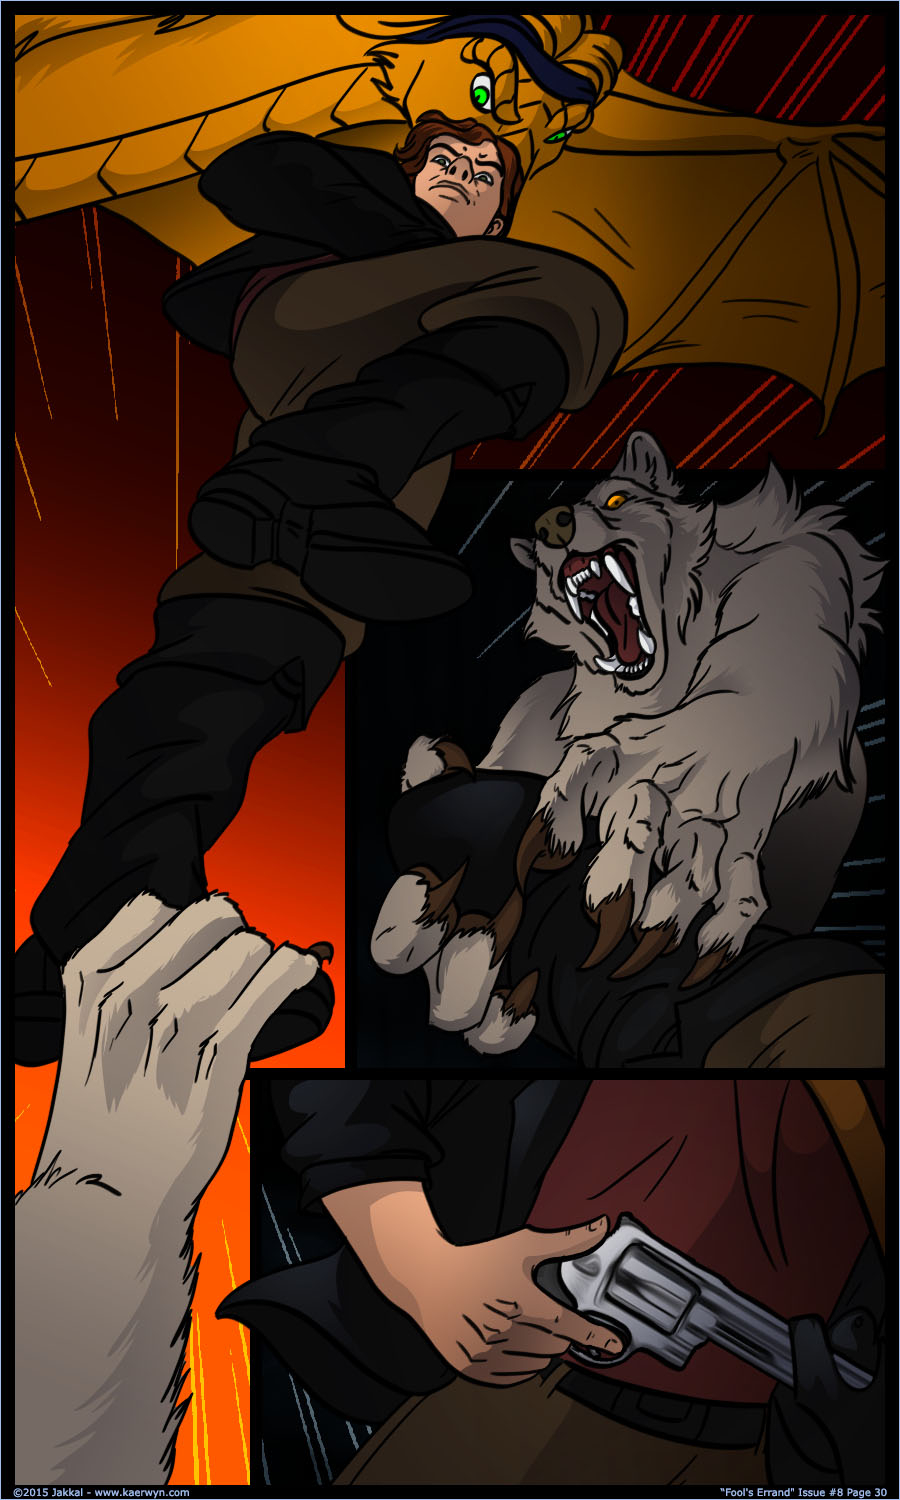 Issue 8 Page 30